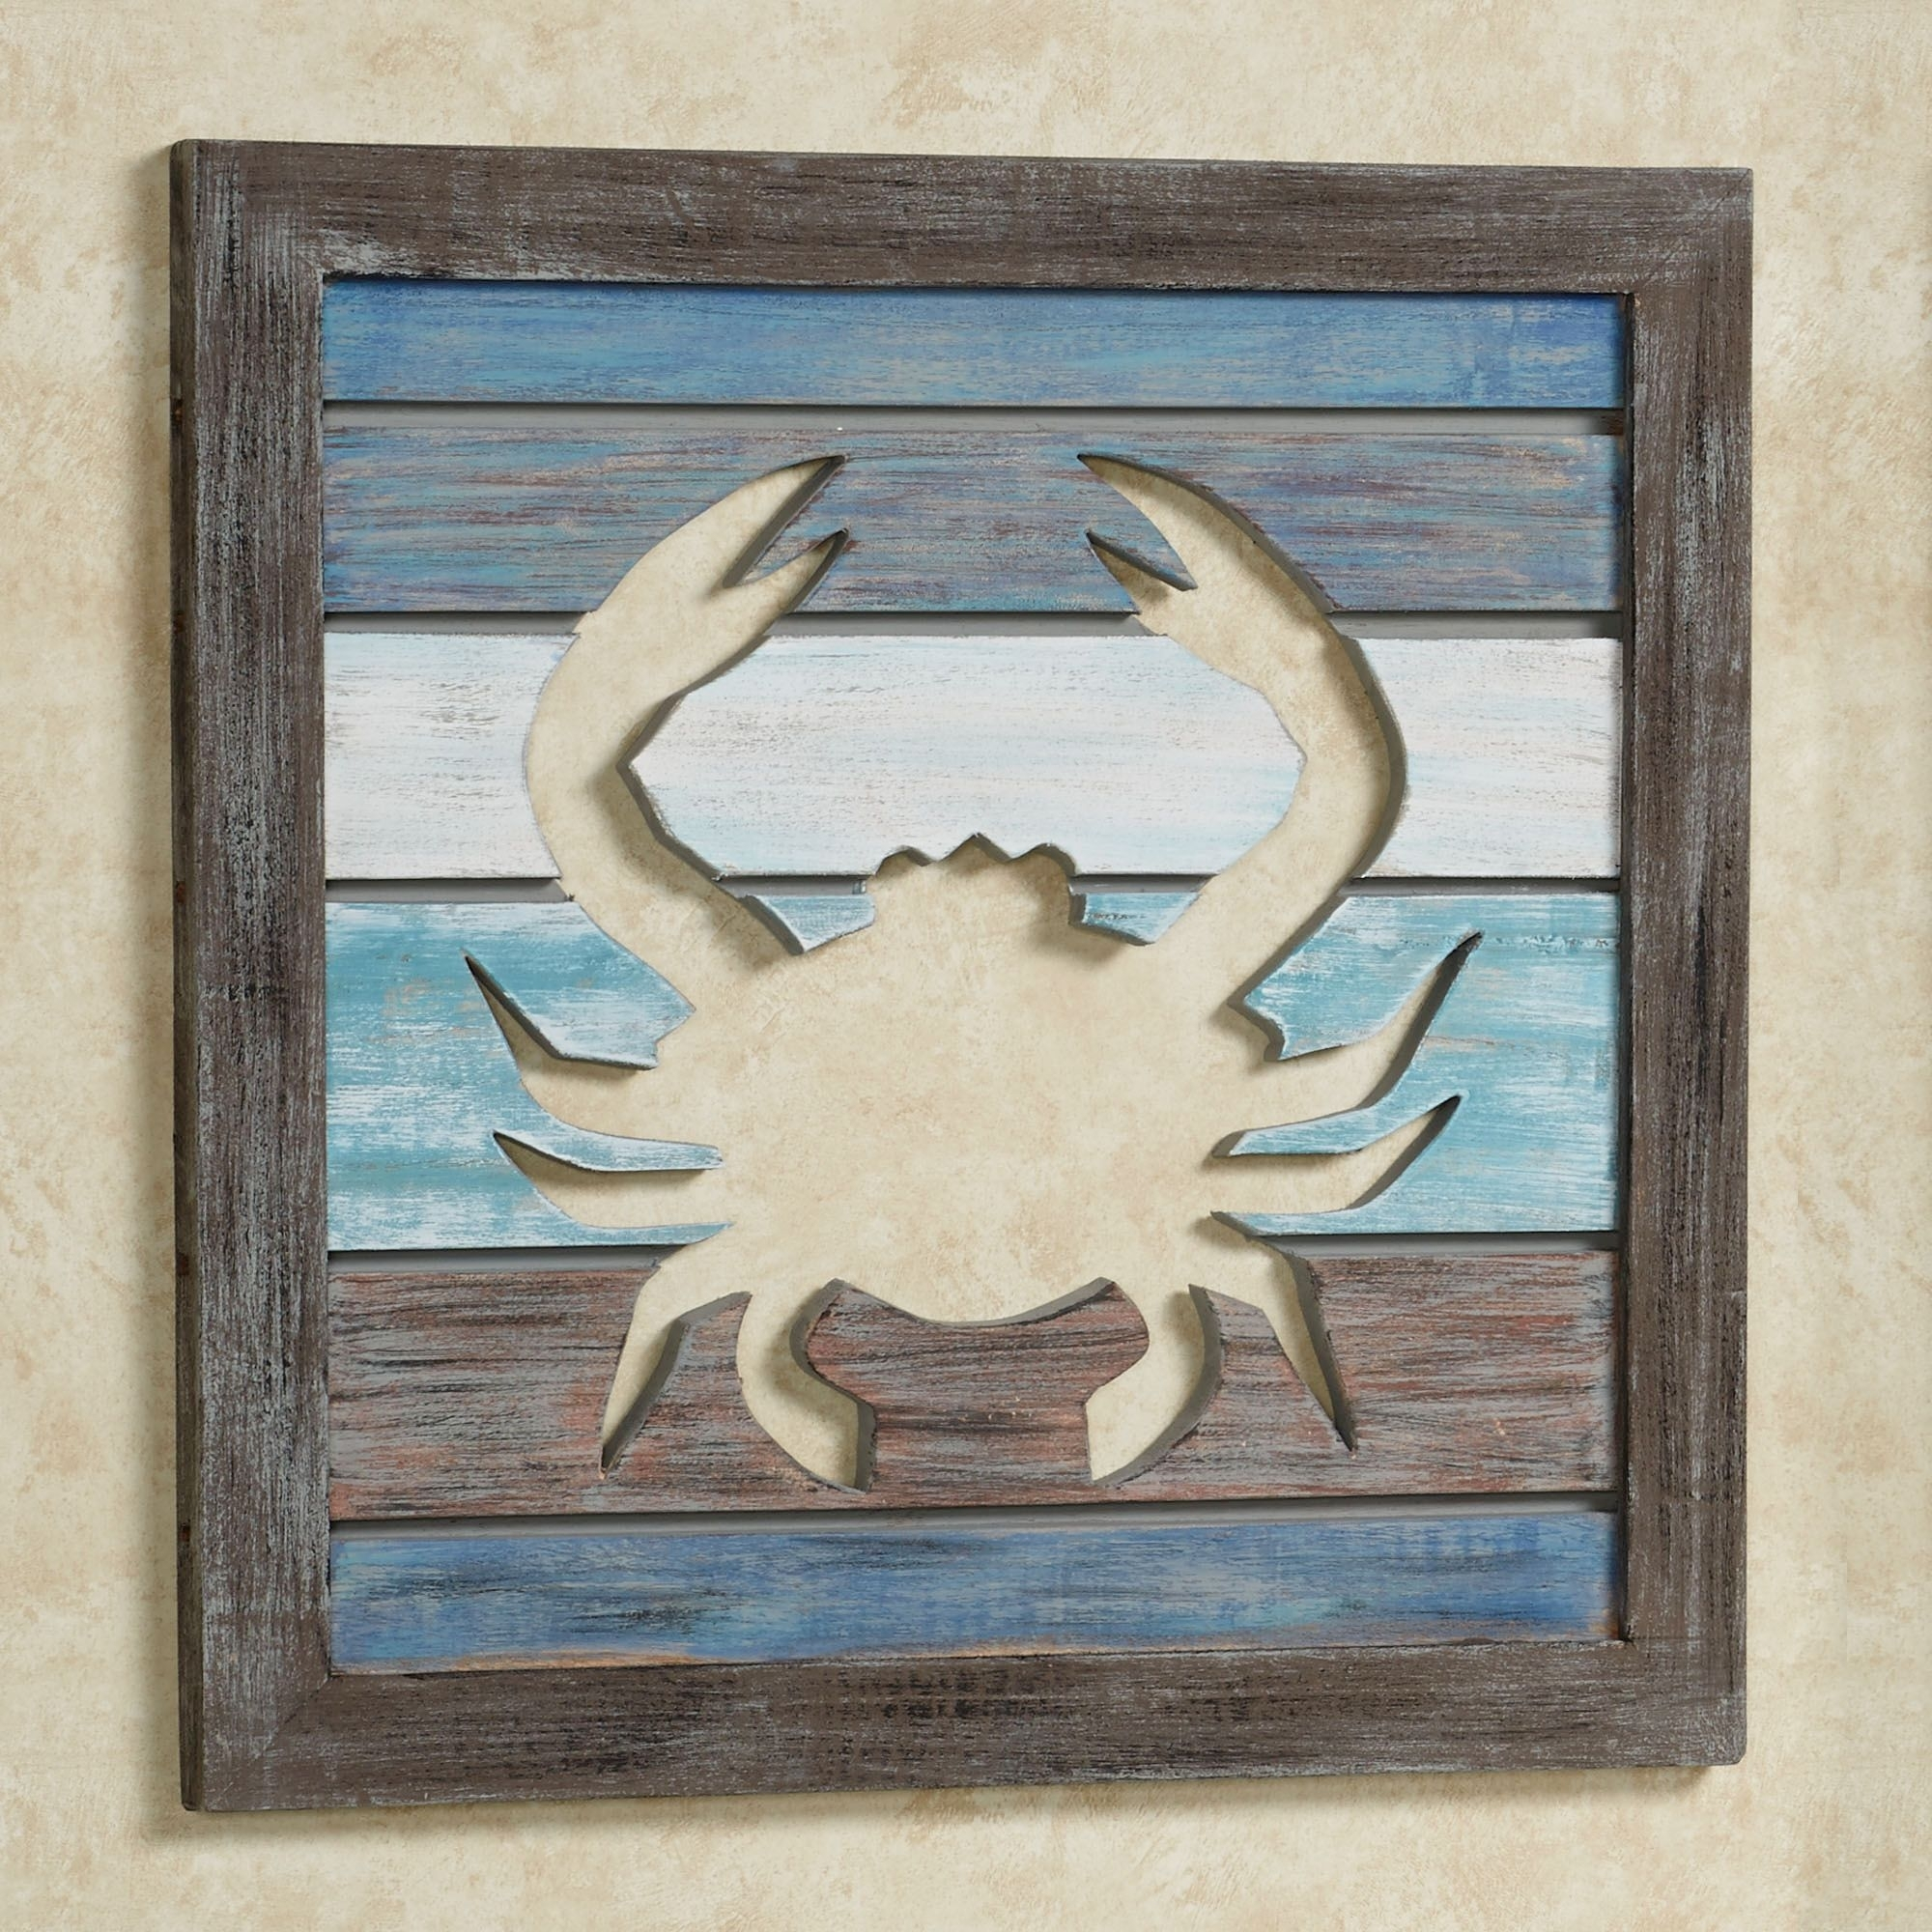 Sealife Cutout Slat Indoor Outdoor Coastal Wall Art Regarding Best And Newest Sea Life Wall Art (View 15 of 15)